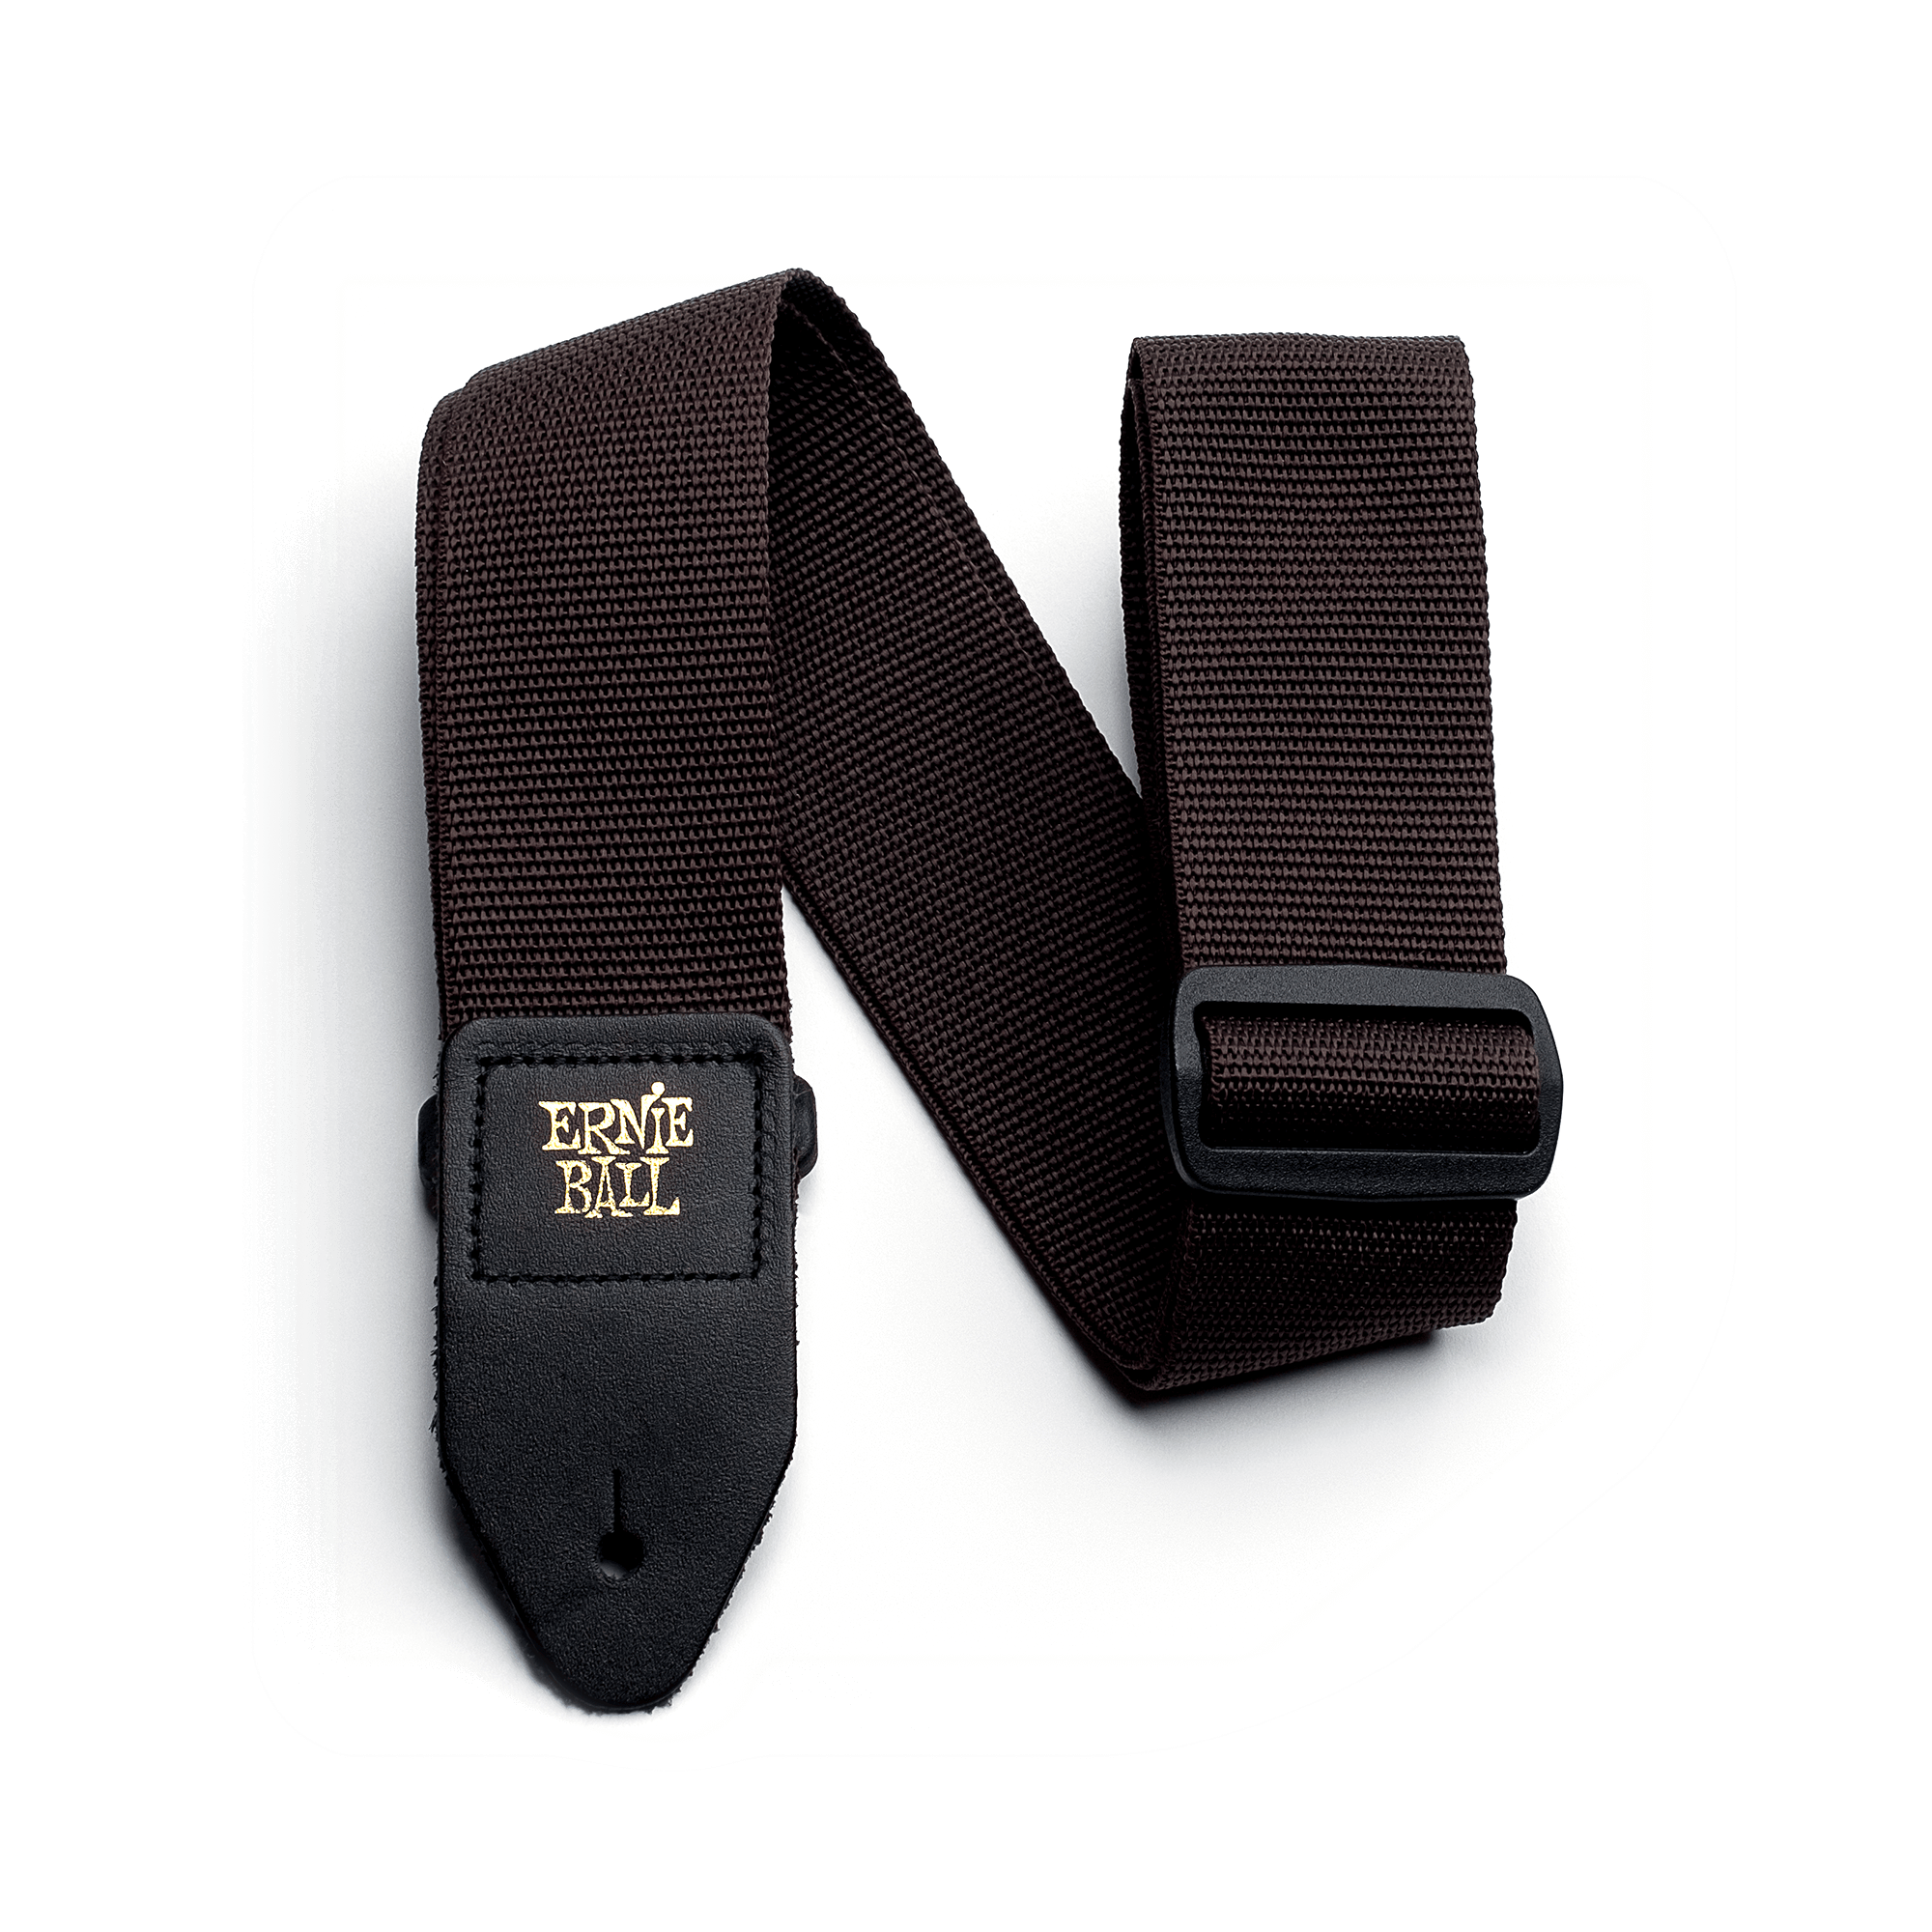 Ernie Ball Polypro Strap Black